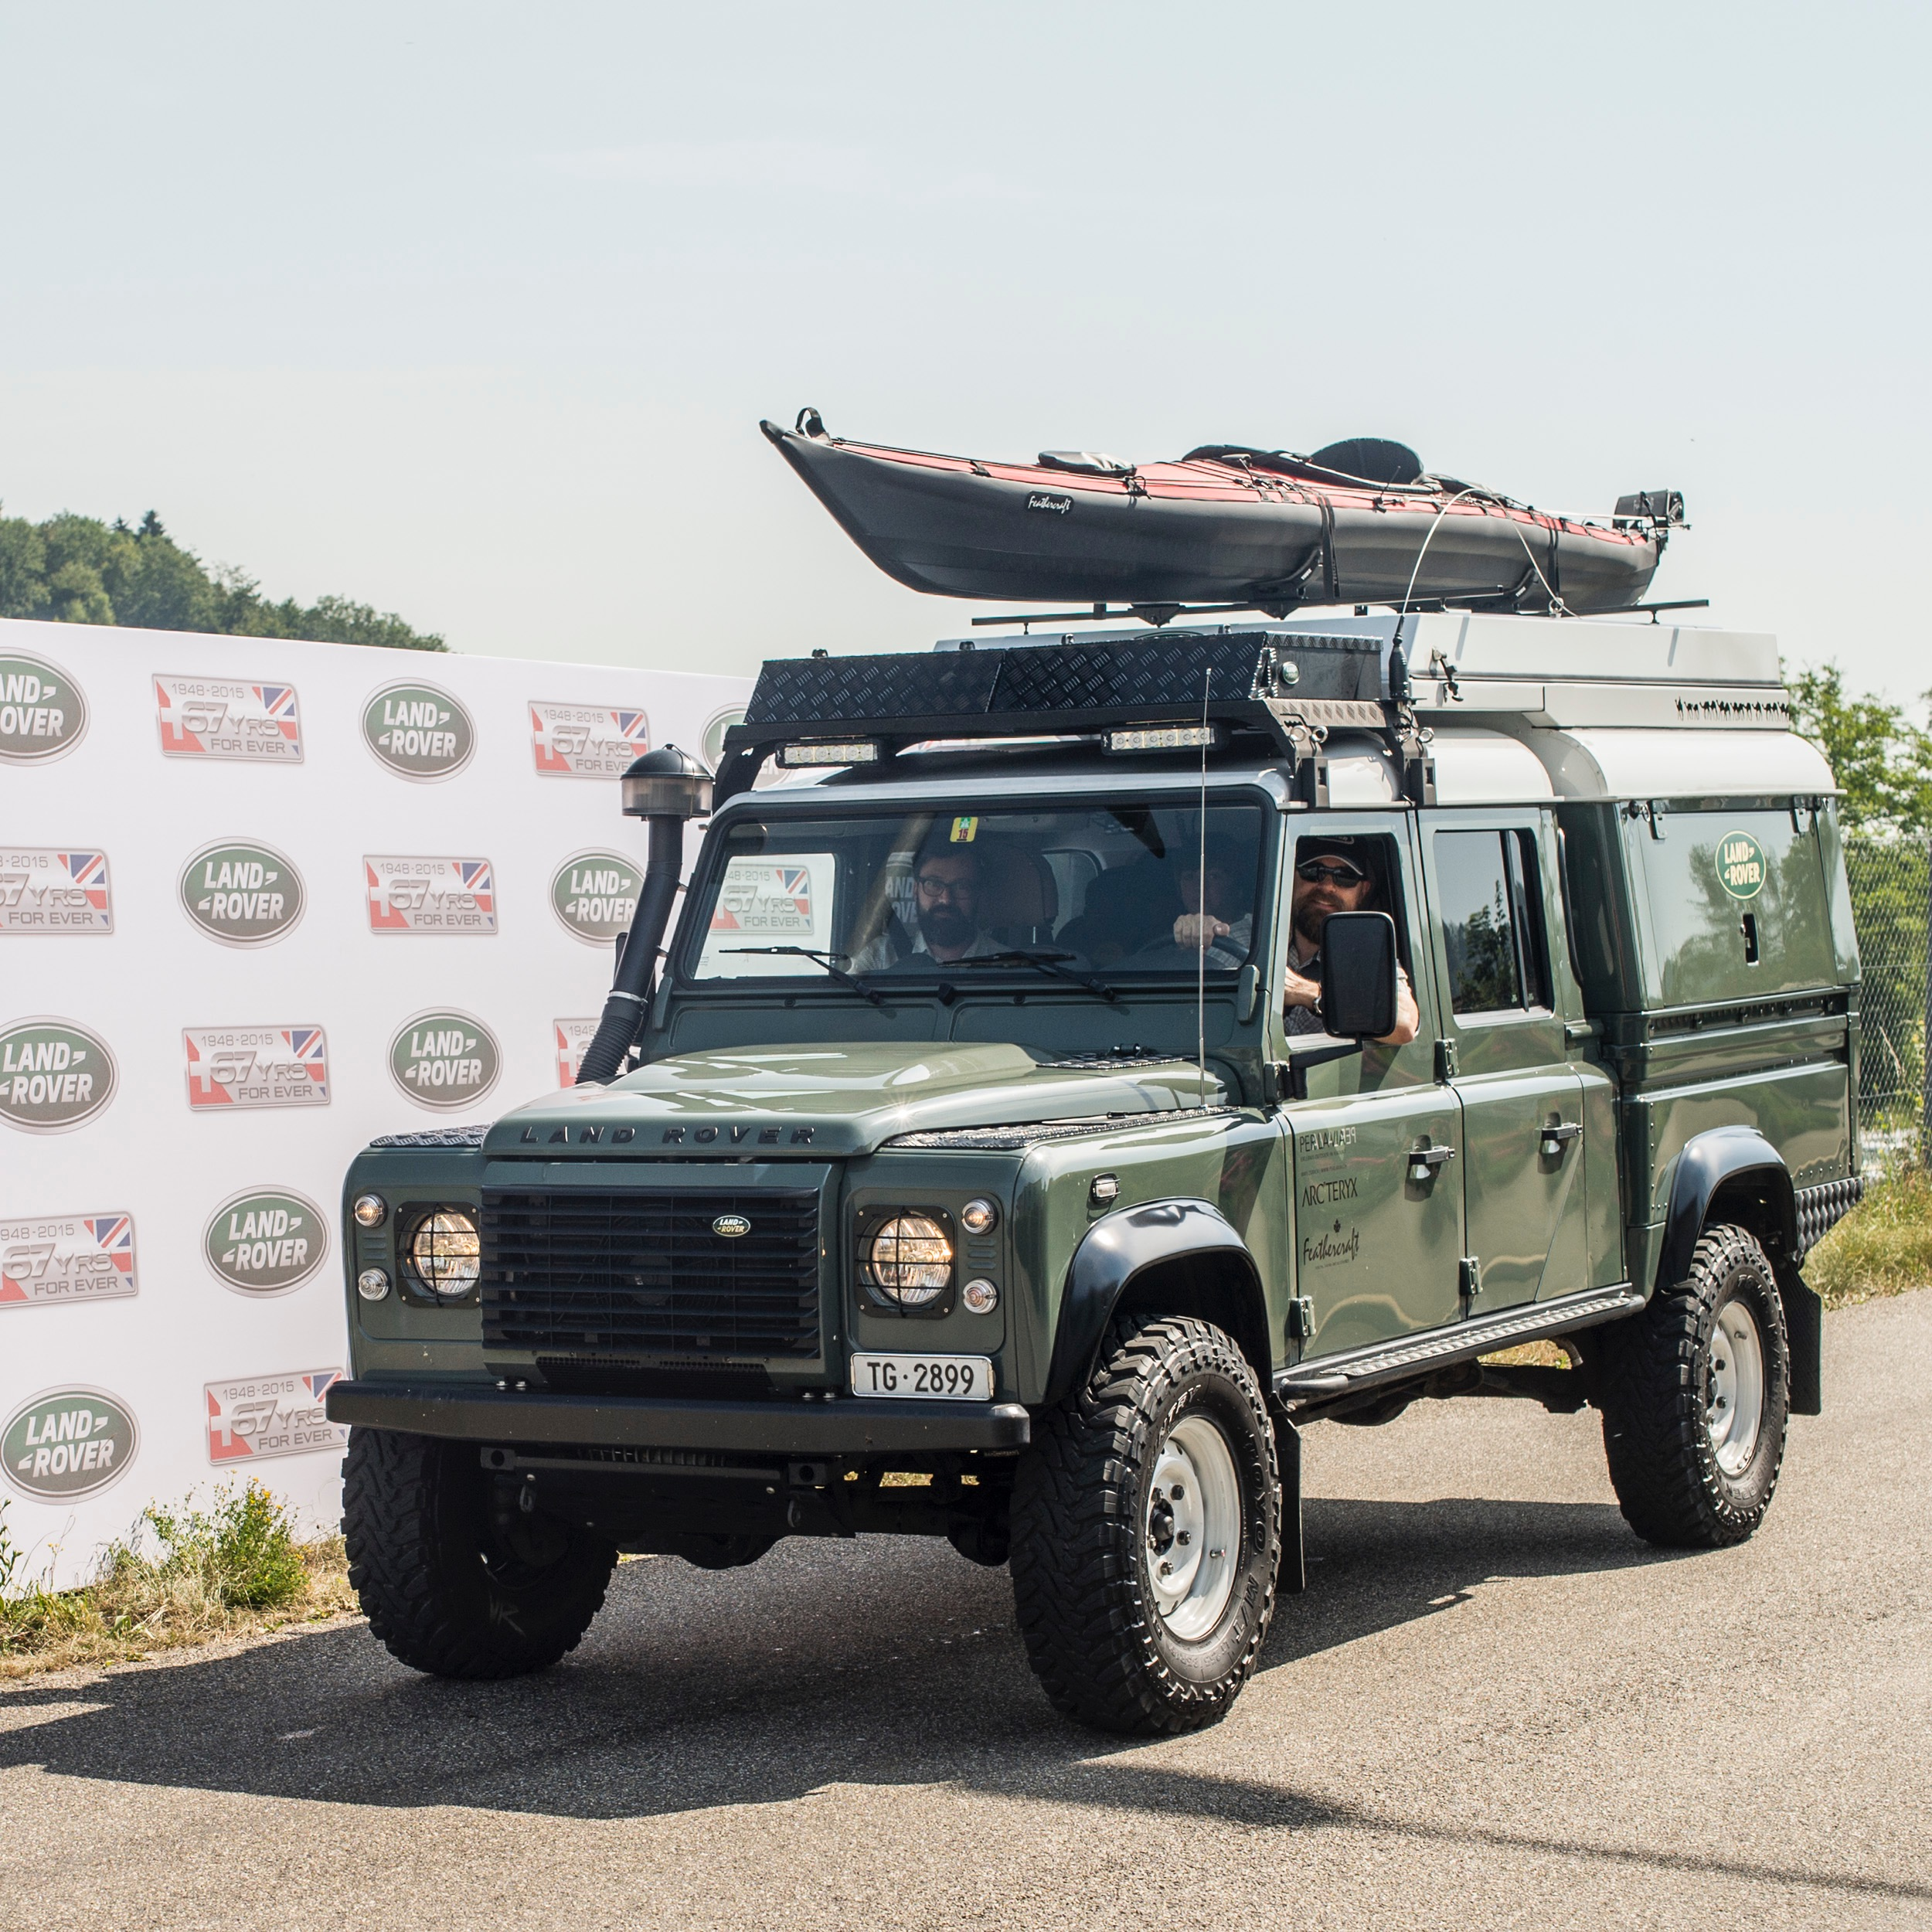 File:Land Rover Defender 130 expedition.jpg - Wikimedia ...